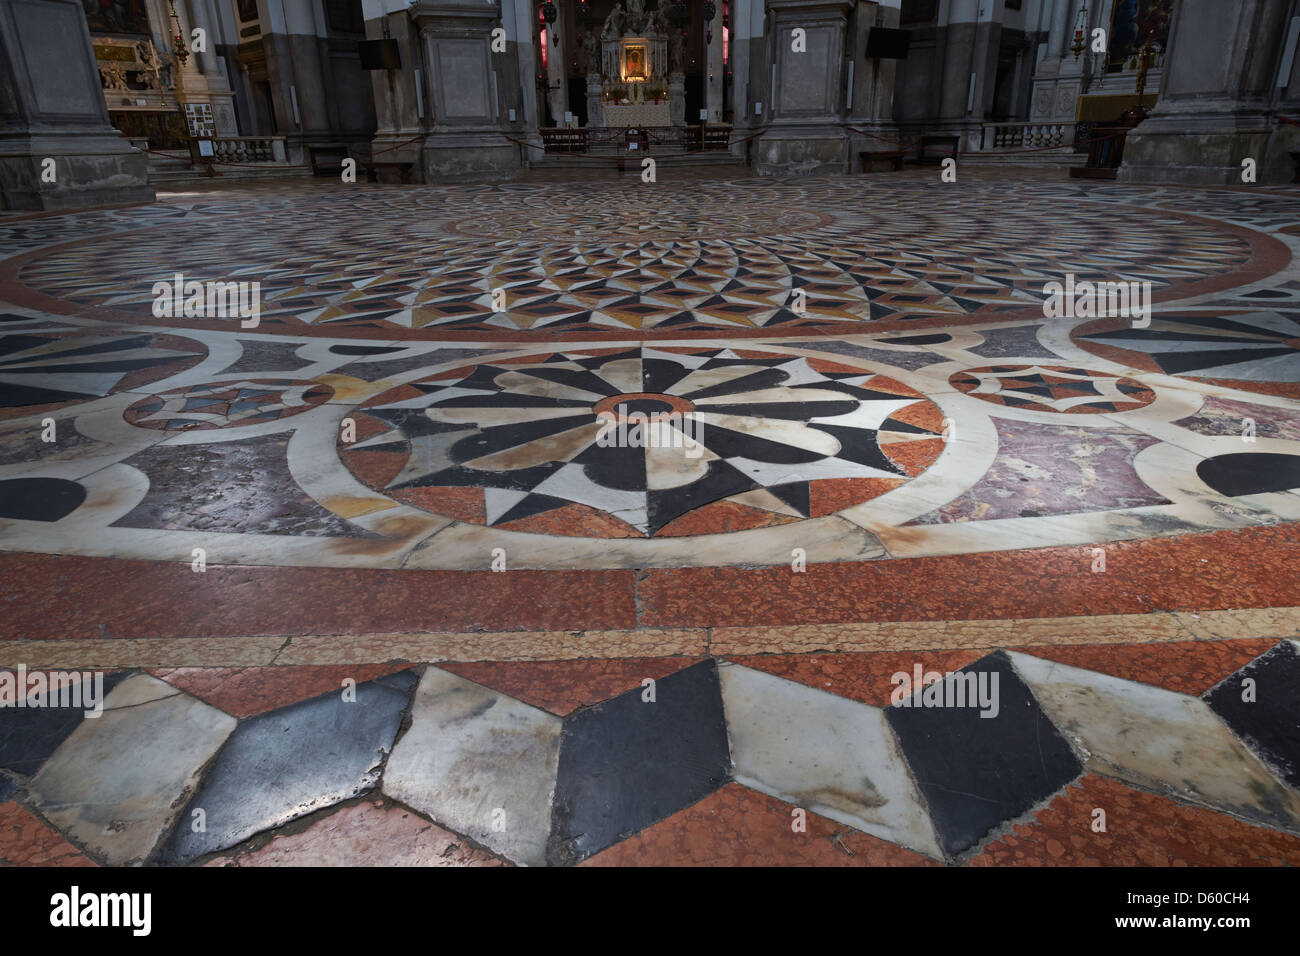 Venice Italy. The church of Santa Maria della Salute built 1631-87 view of geometric floor of coloured marbles. - Stock Image